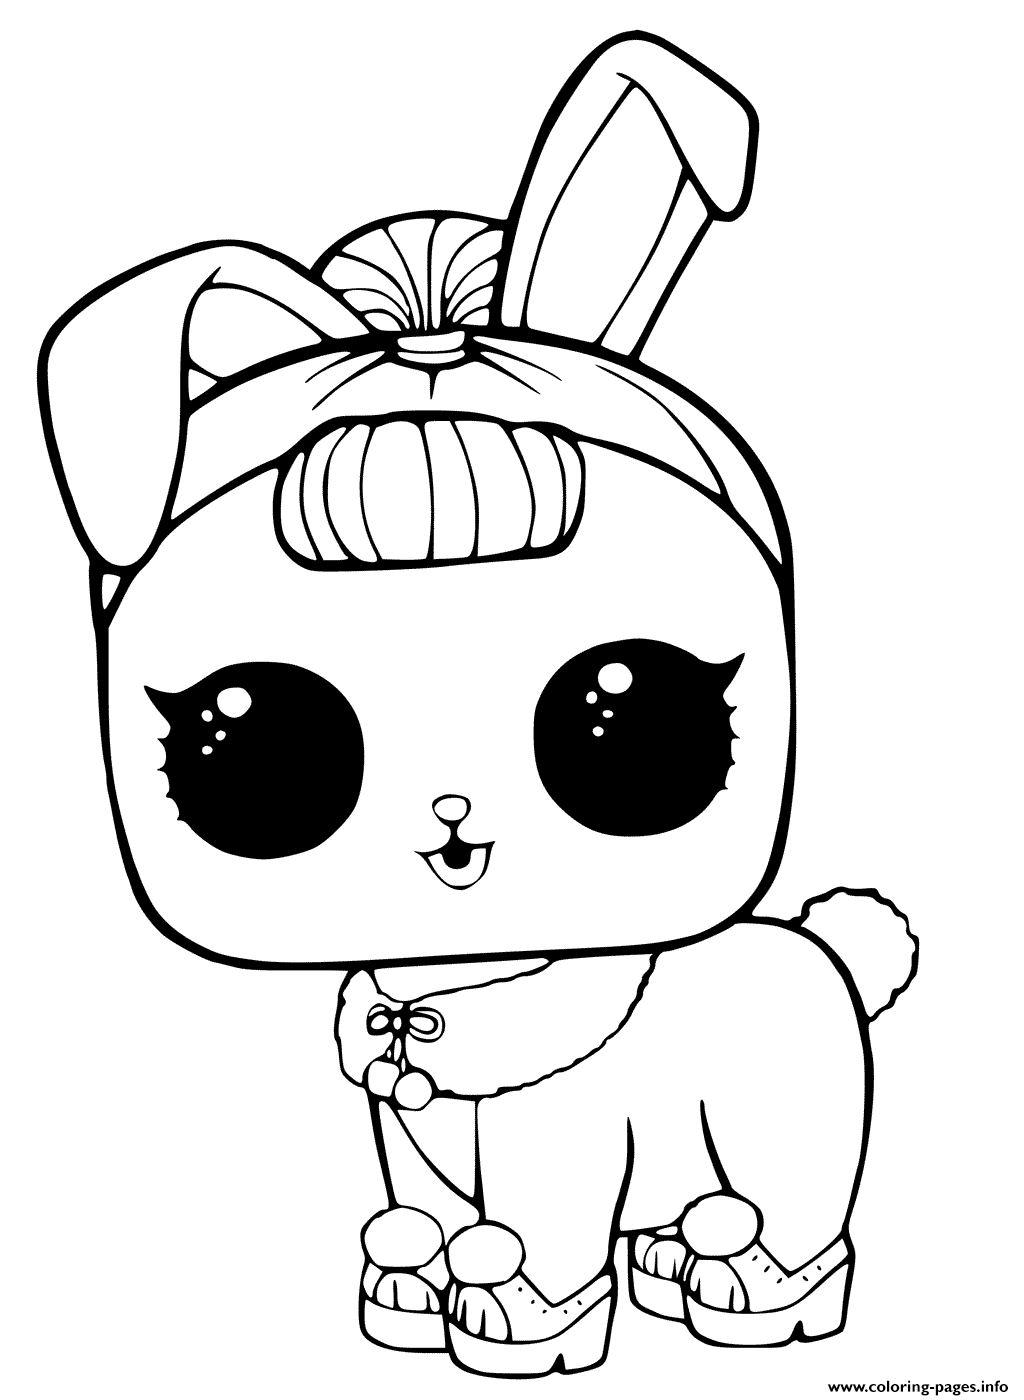 rabbit pictures for kids for colouring free printable rabbit coloring pages for kids kids colouring pictures rabbit for for